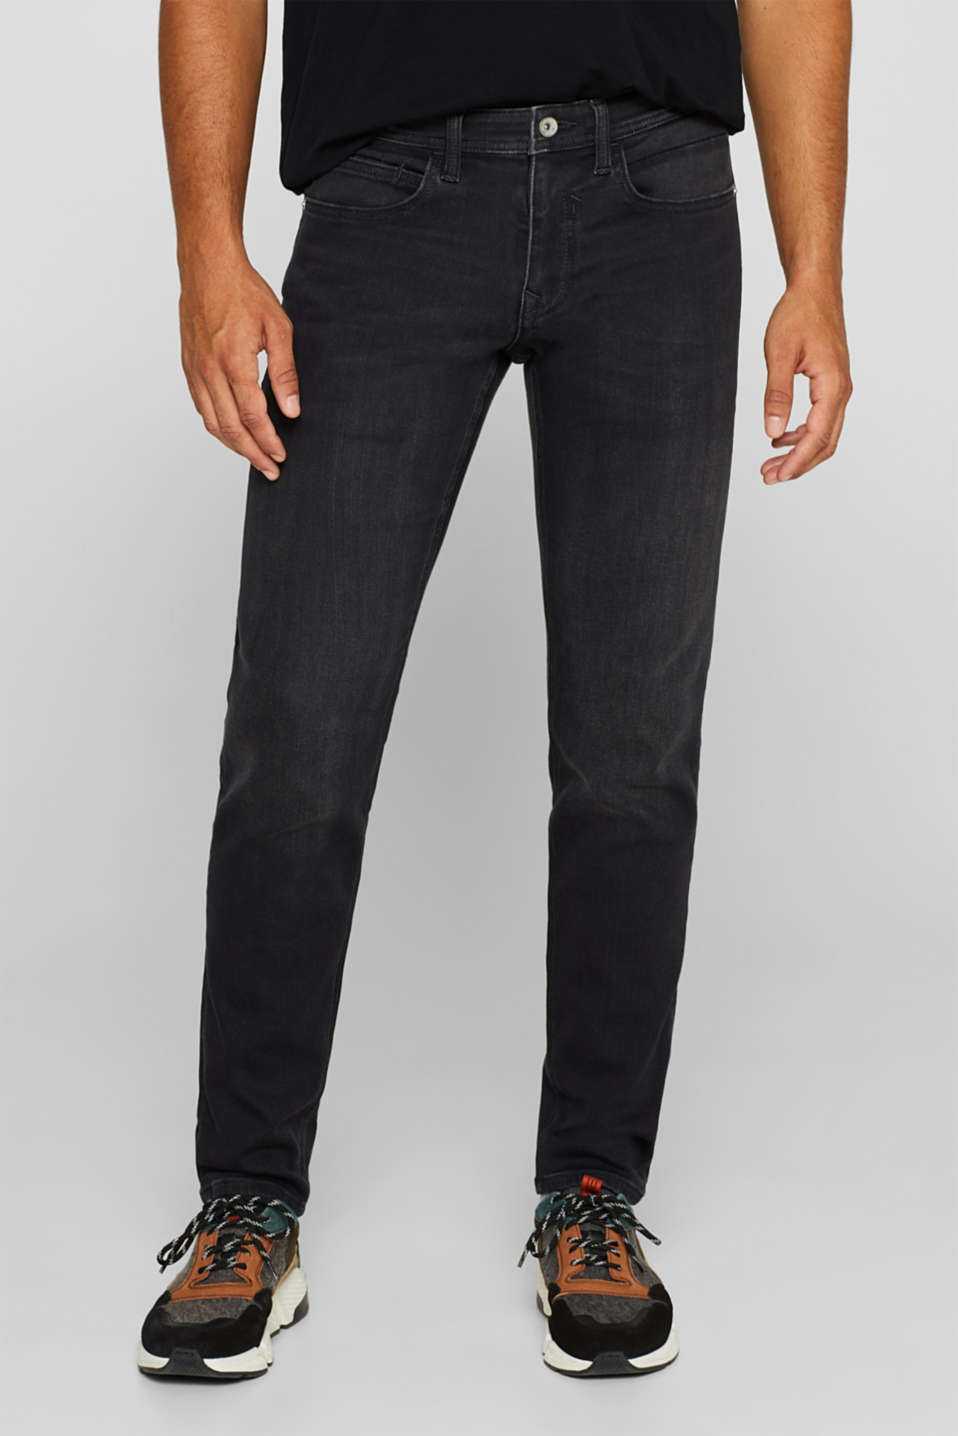 Esprit - Jeans super stretch stile jogger